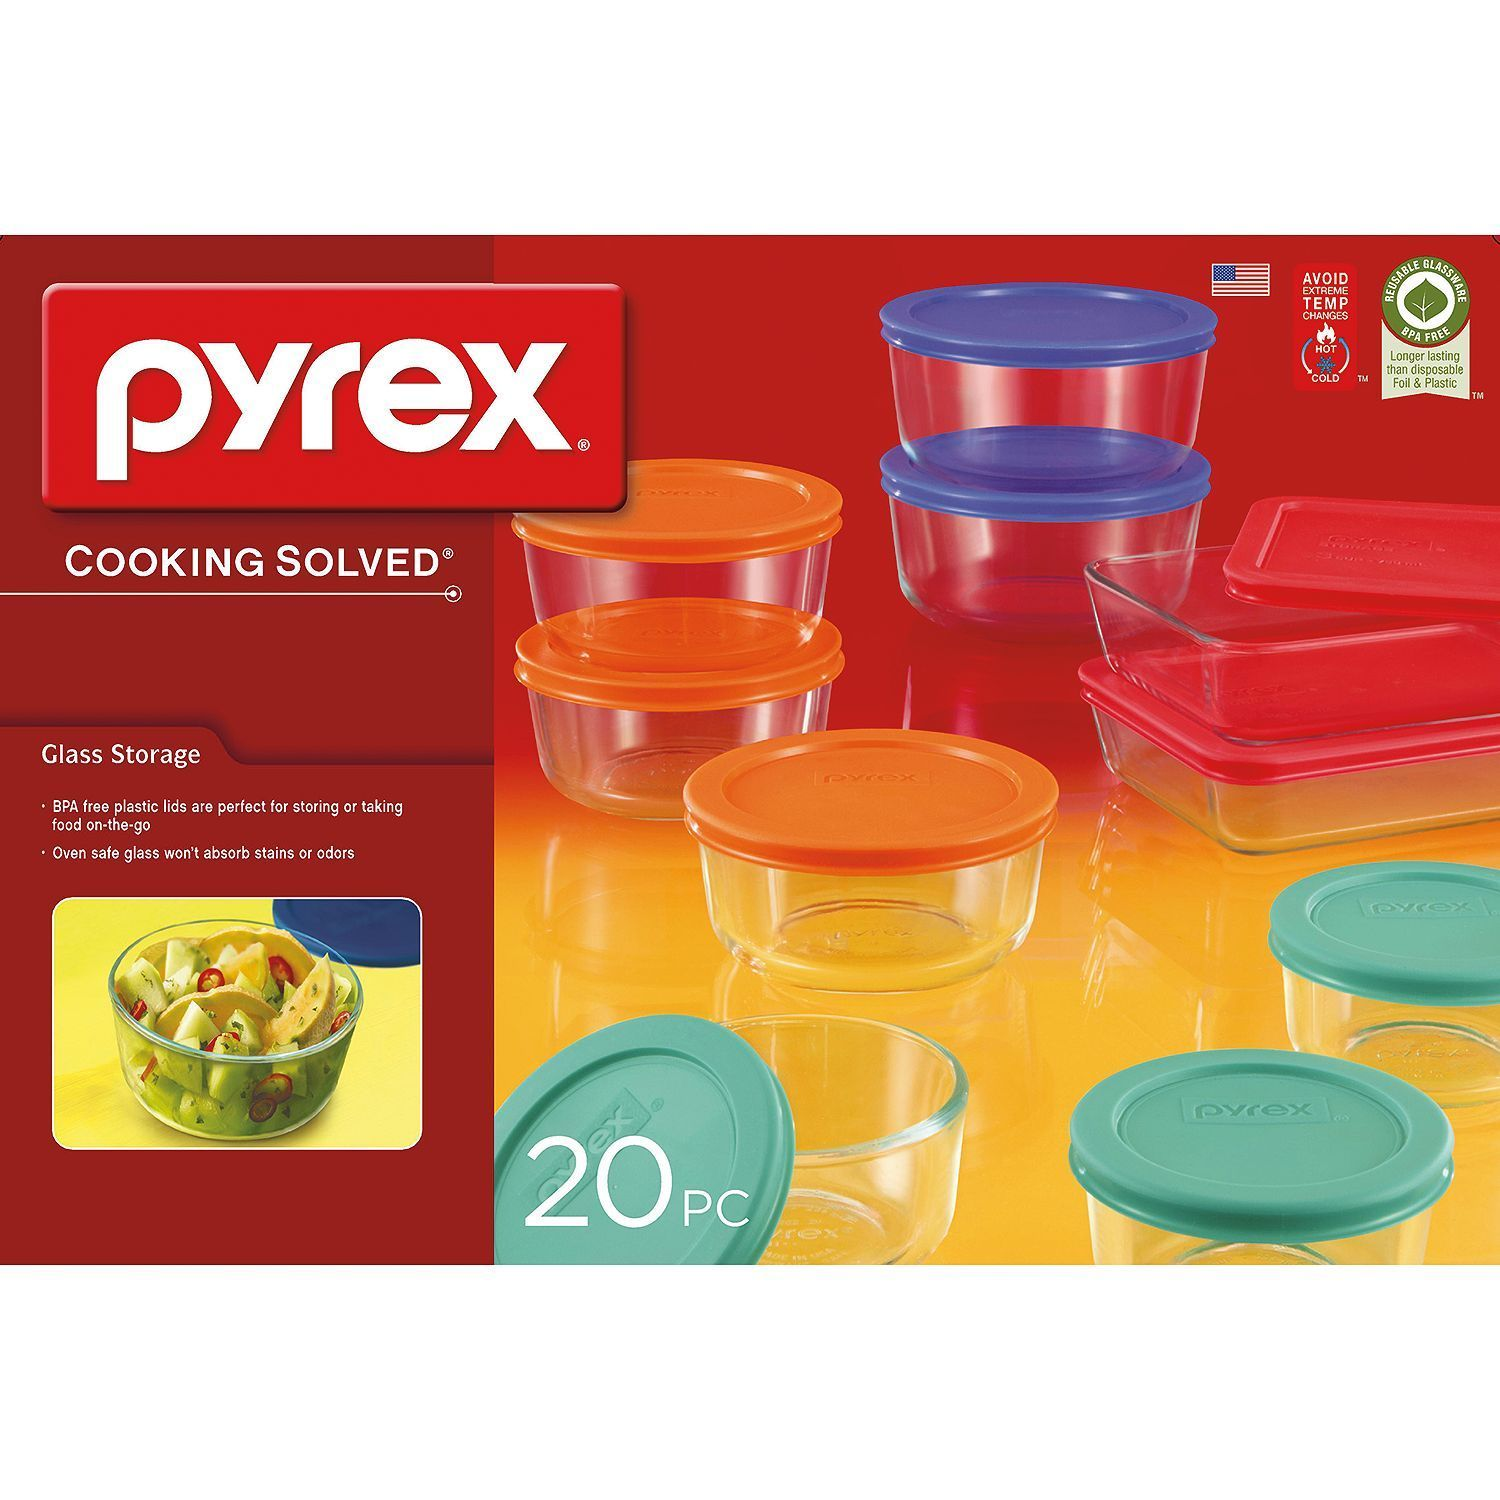 Pyrex 20-Piece Glass Storage Set Containers w/ lids Great Bakeware and Serving 1